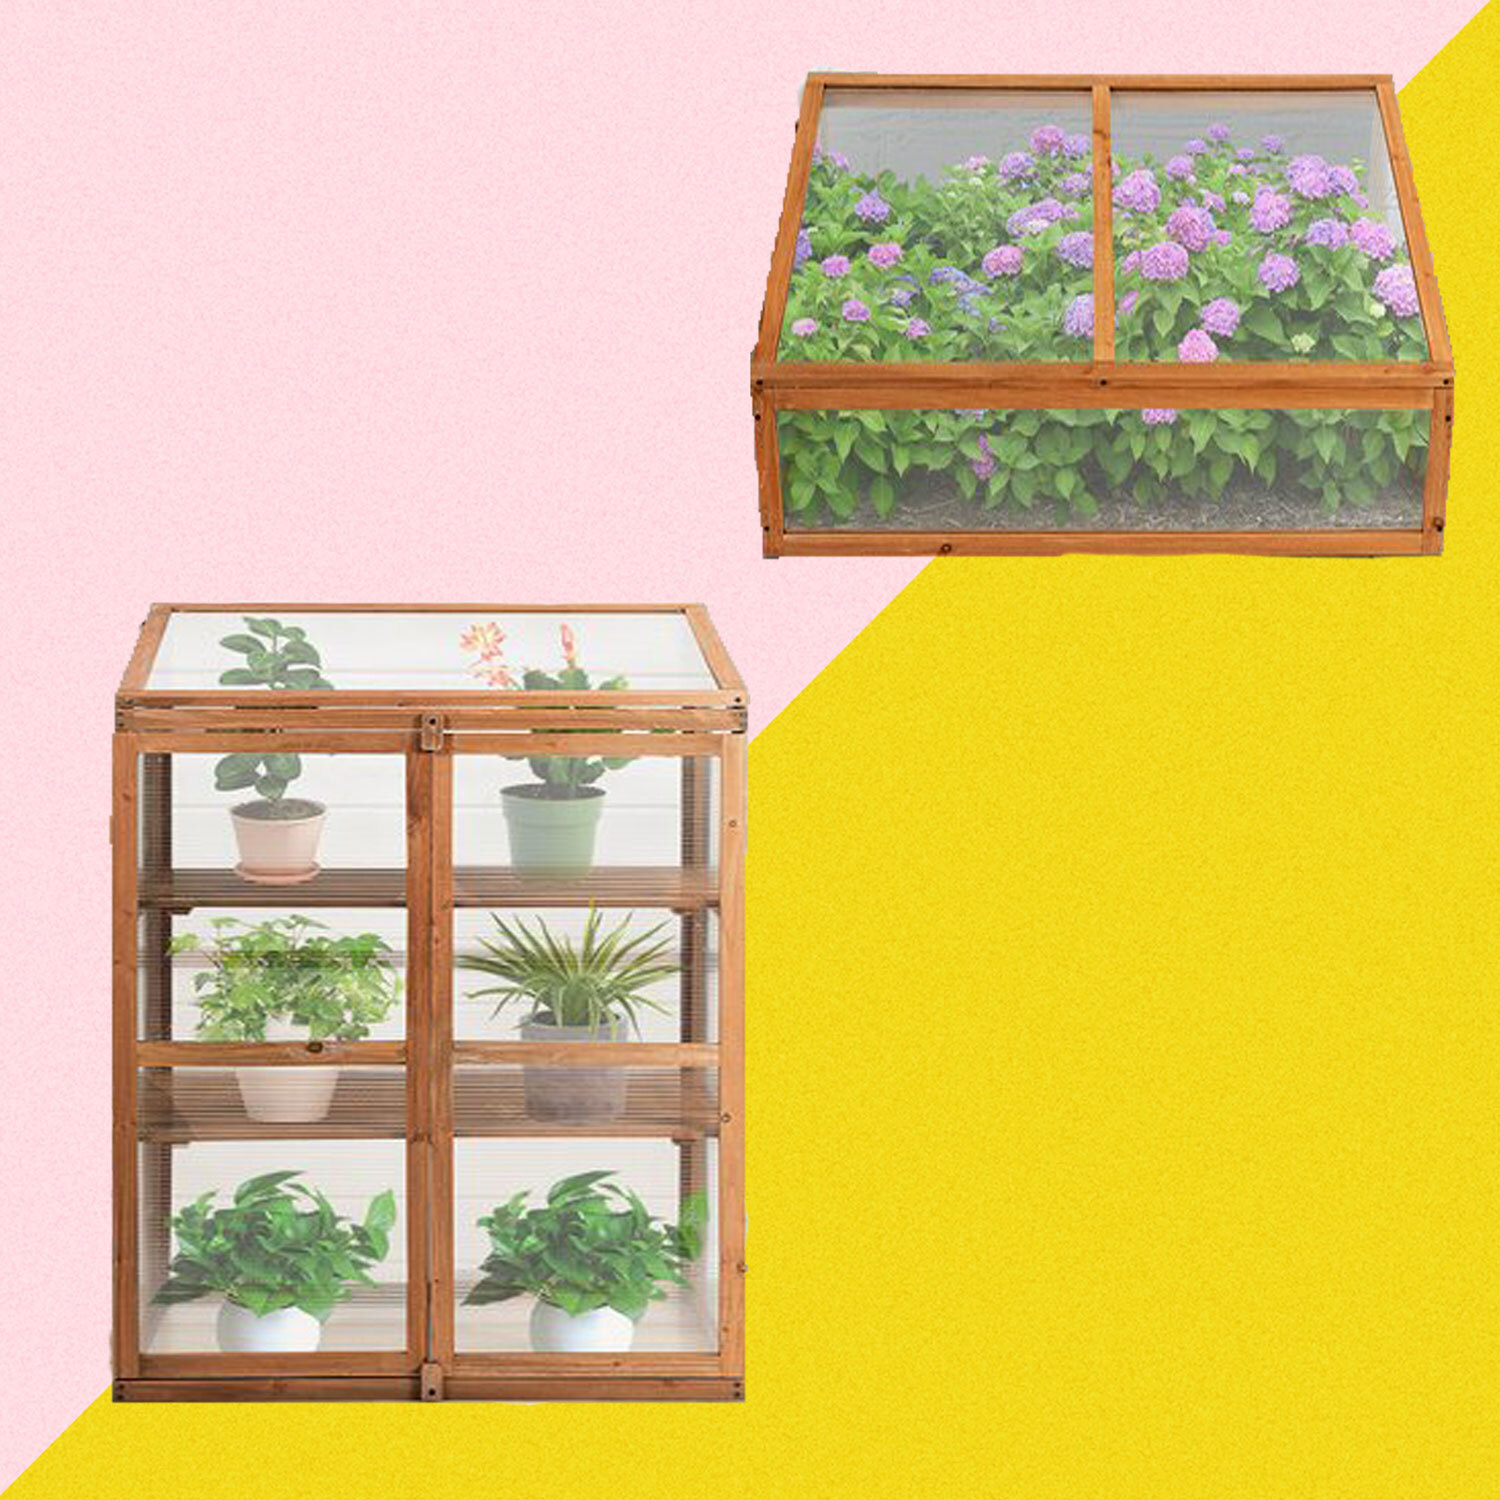 These Mini Greenhouses From Wayfair Are the Perfect Addition to Any Garden